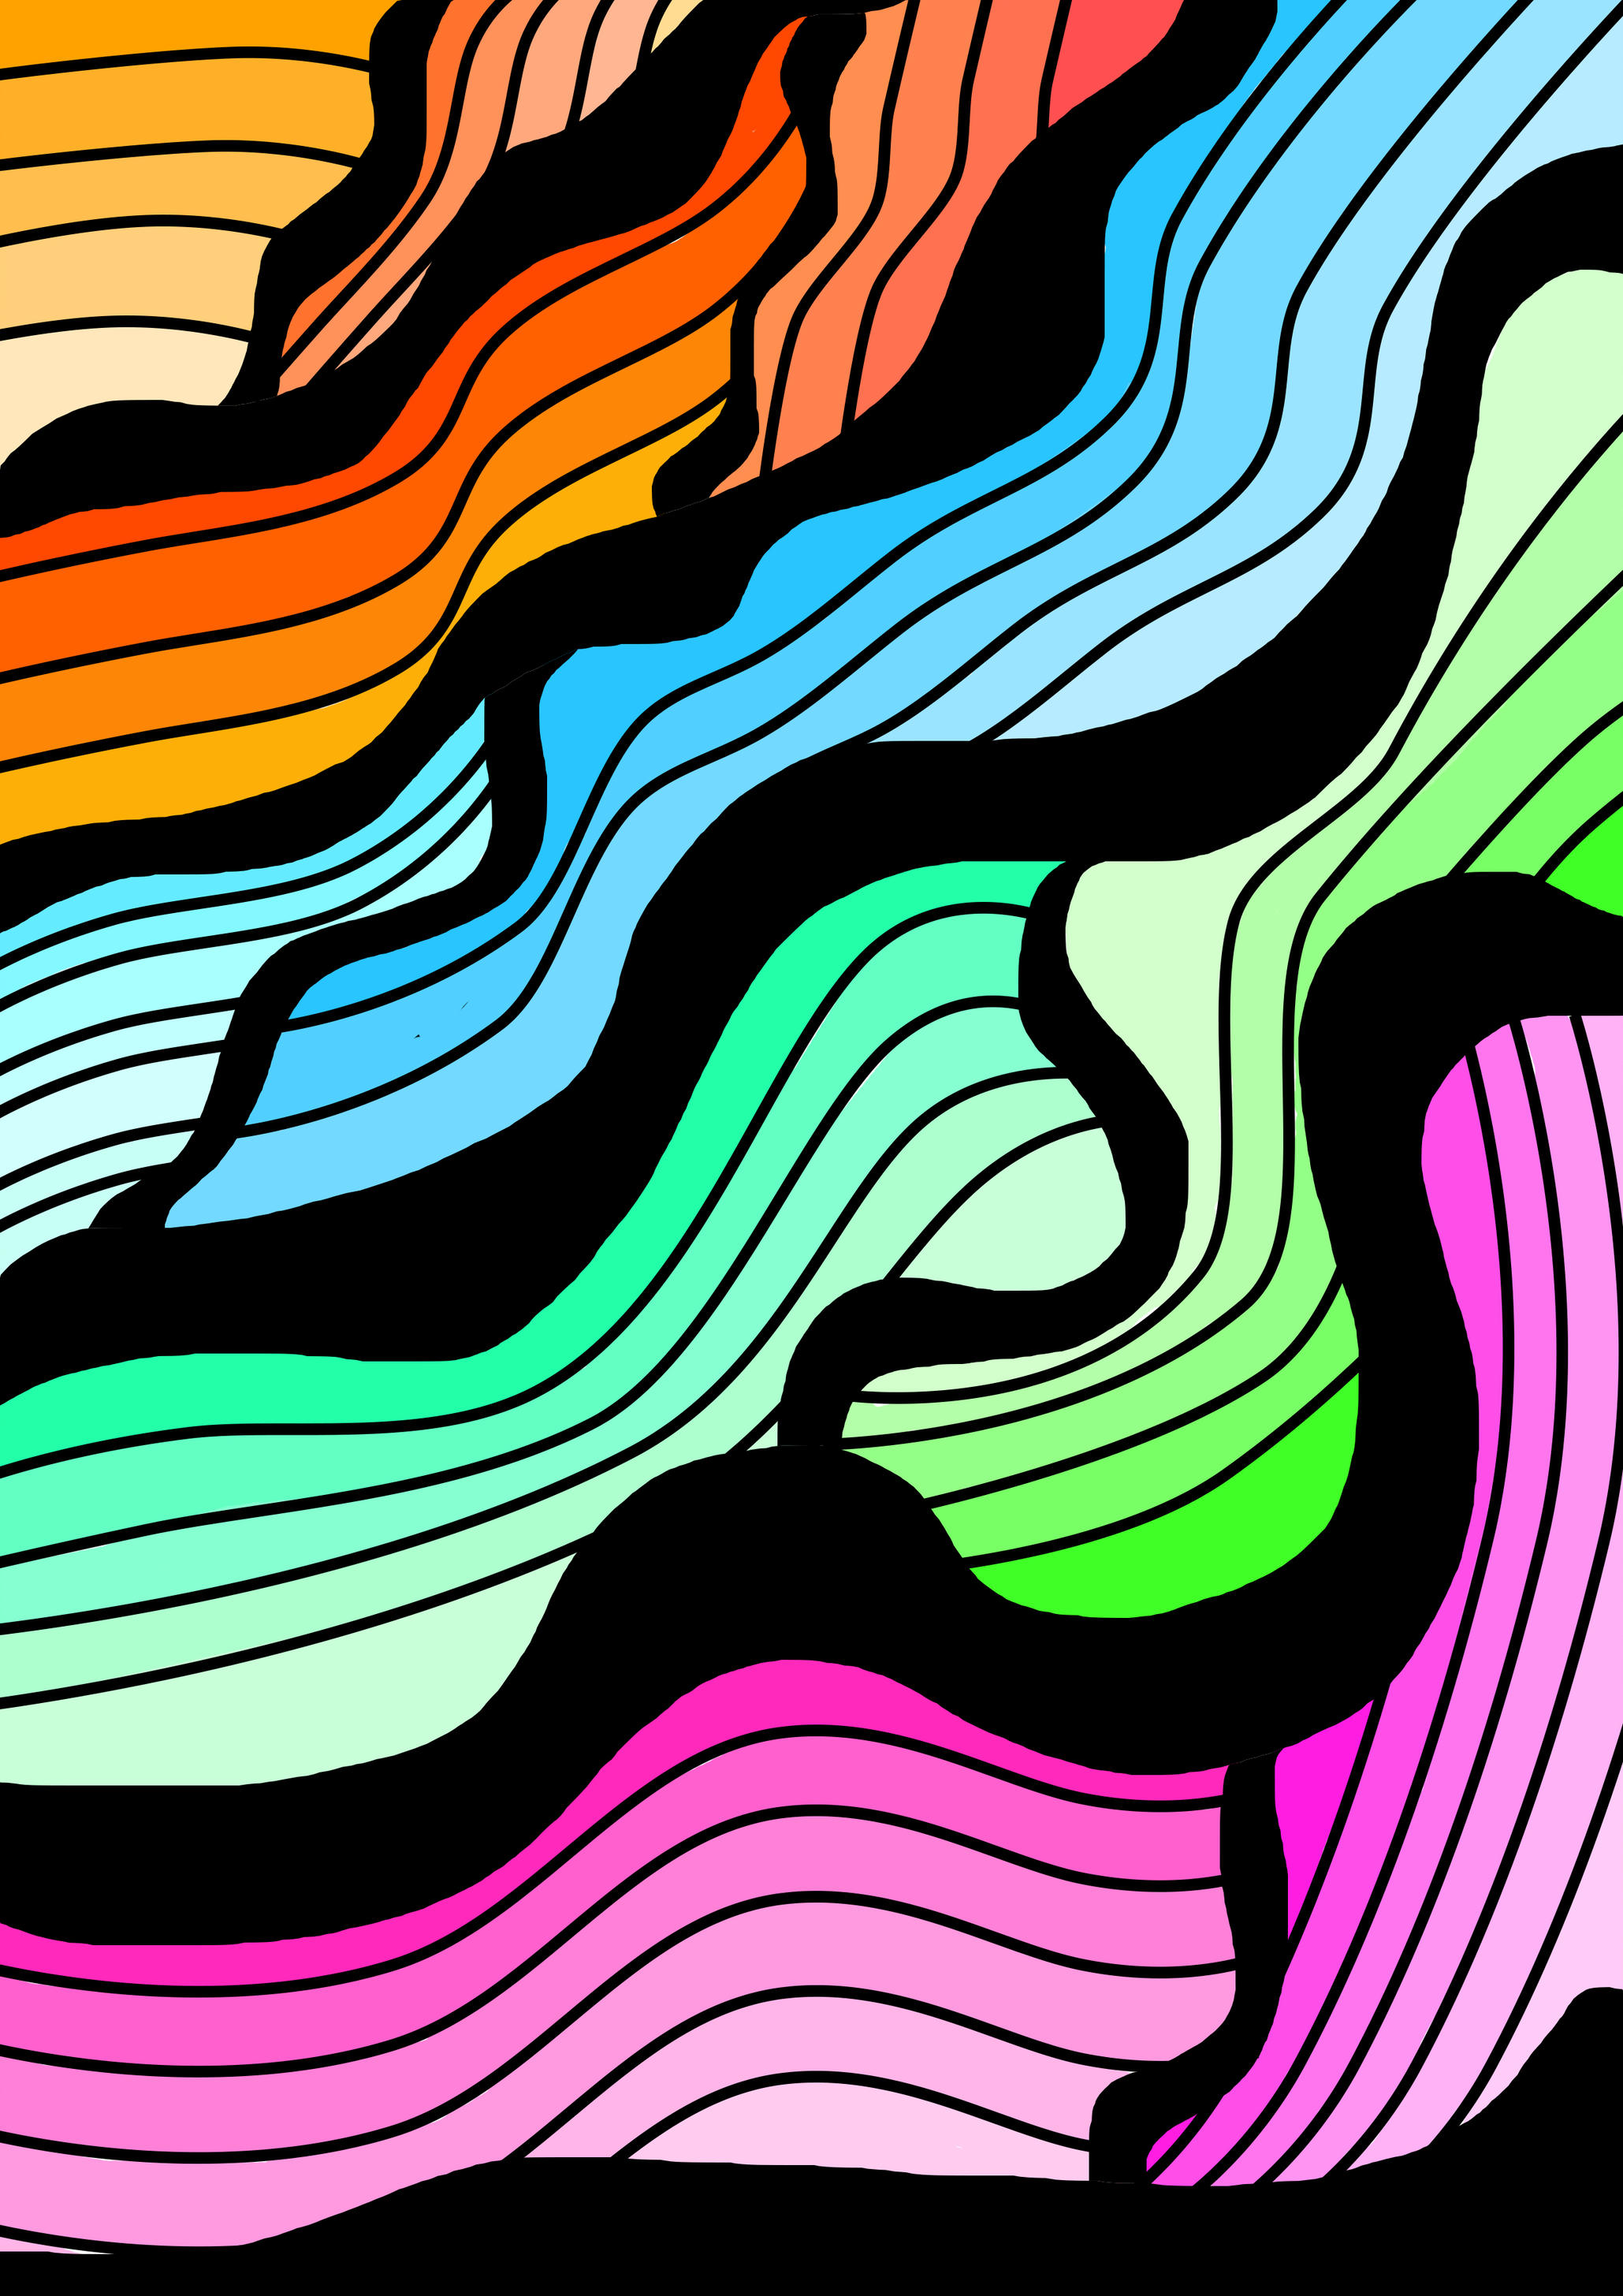 Psychedelic Colouring Book by Tripija on DeviantArt